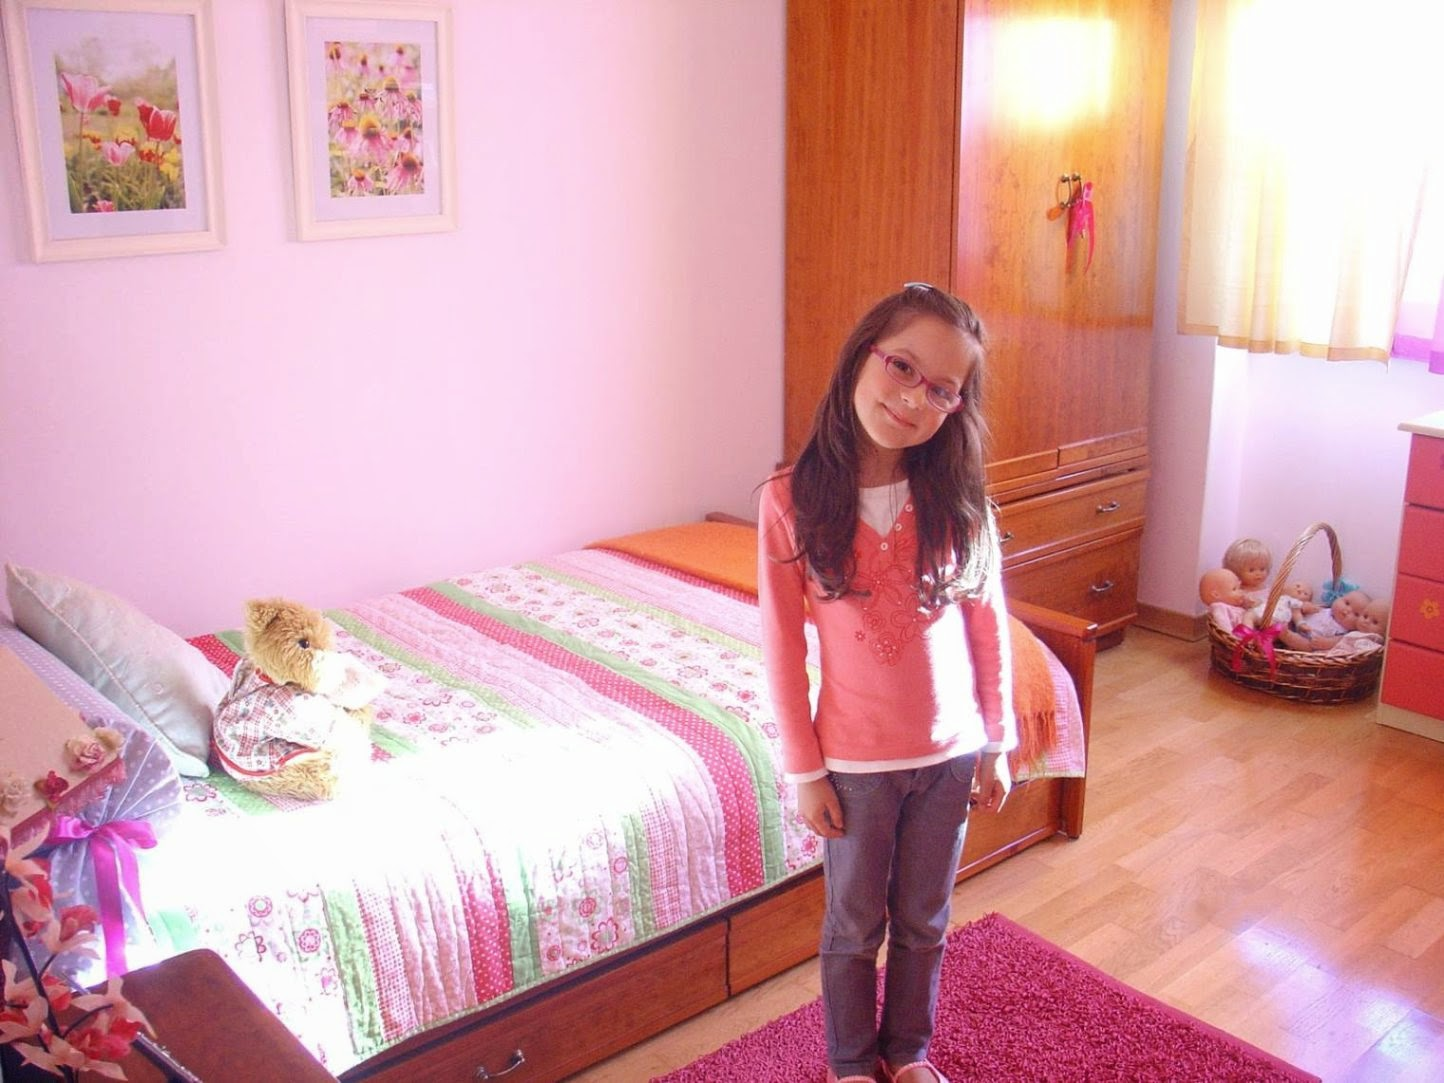 Some Color Ideas for Girl Bedroom